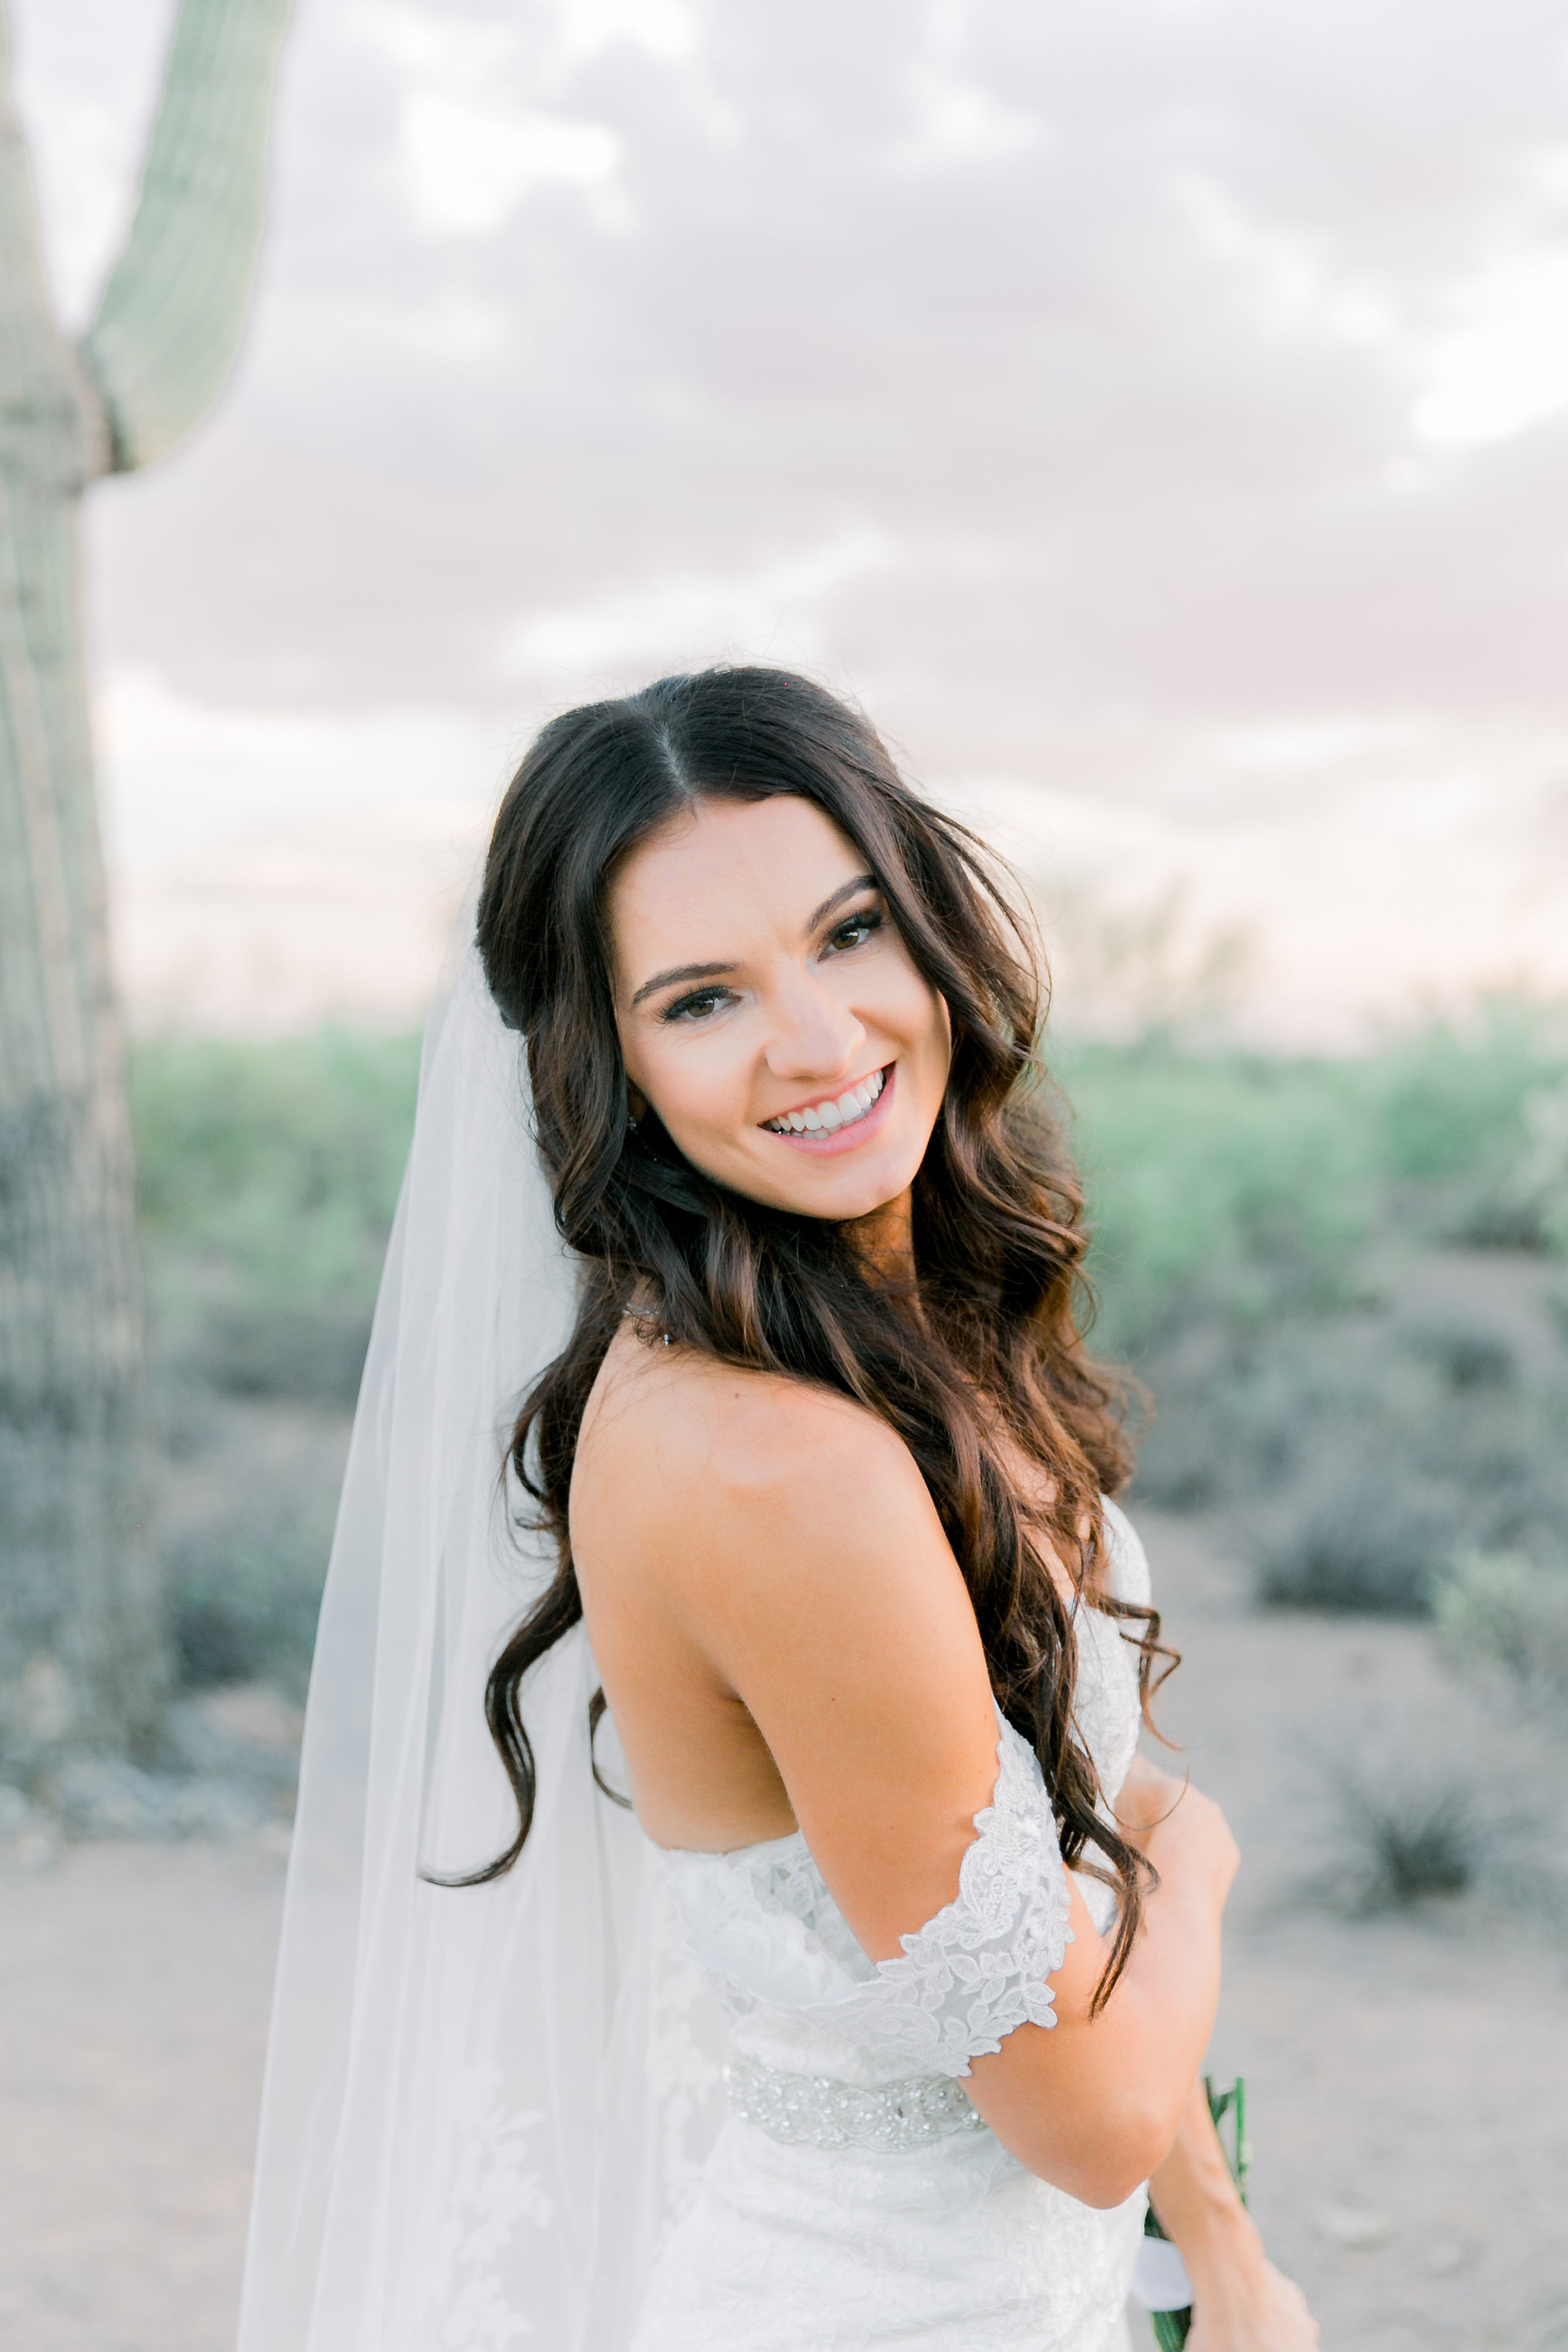 Karlie Colleen Photography - Arizona Wedding - The Paseo Venue - Jackie & Ryan -670